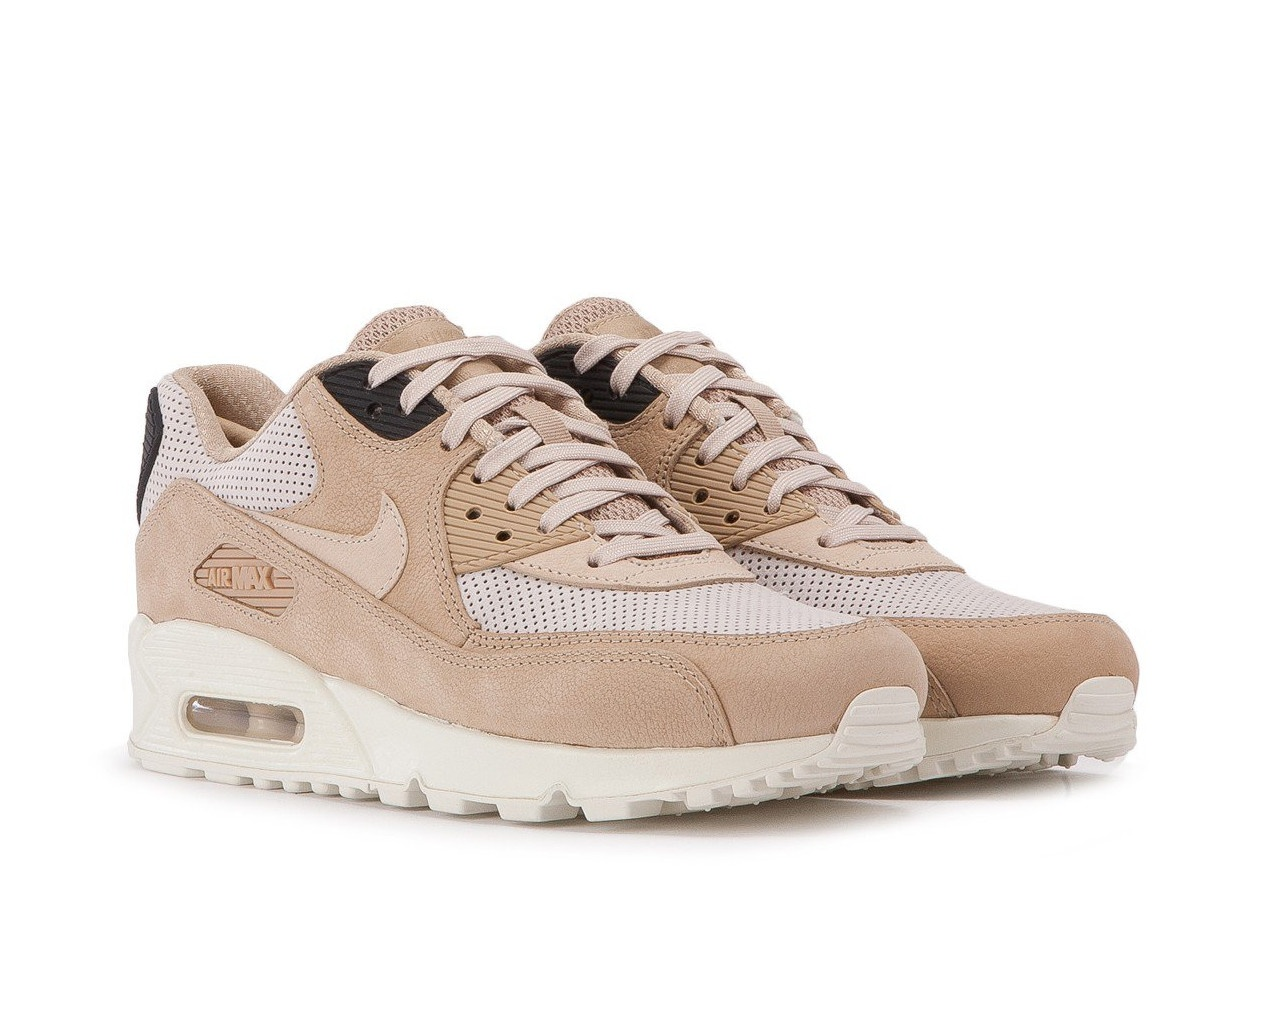 official photos aff7b 6d246 nike_sneakers_air_max_90_pinnacle_dames_beige_3_242347.jpg